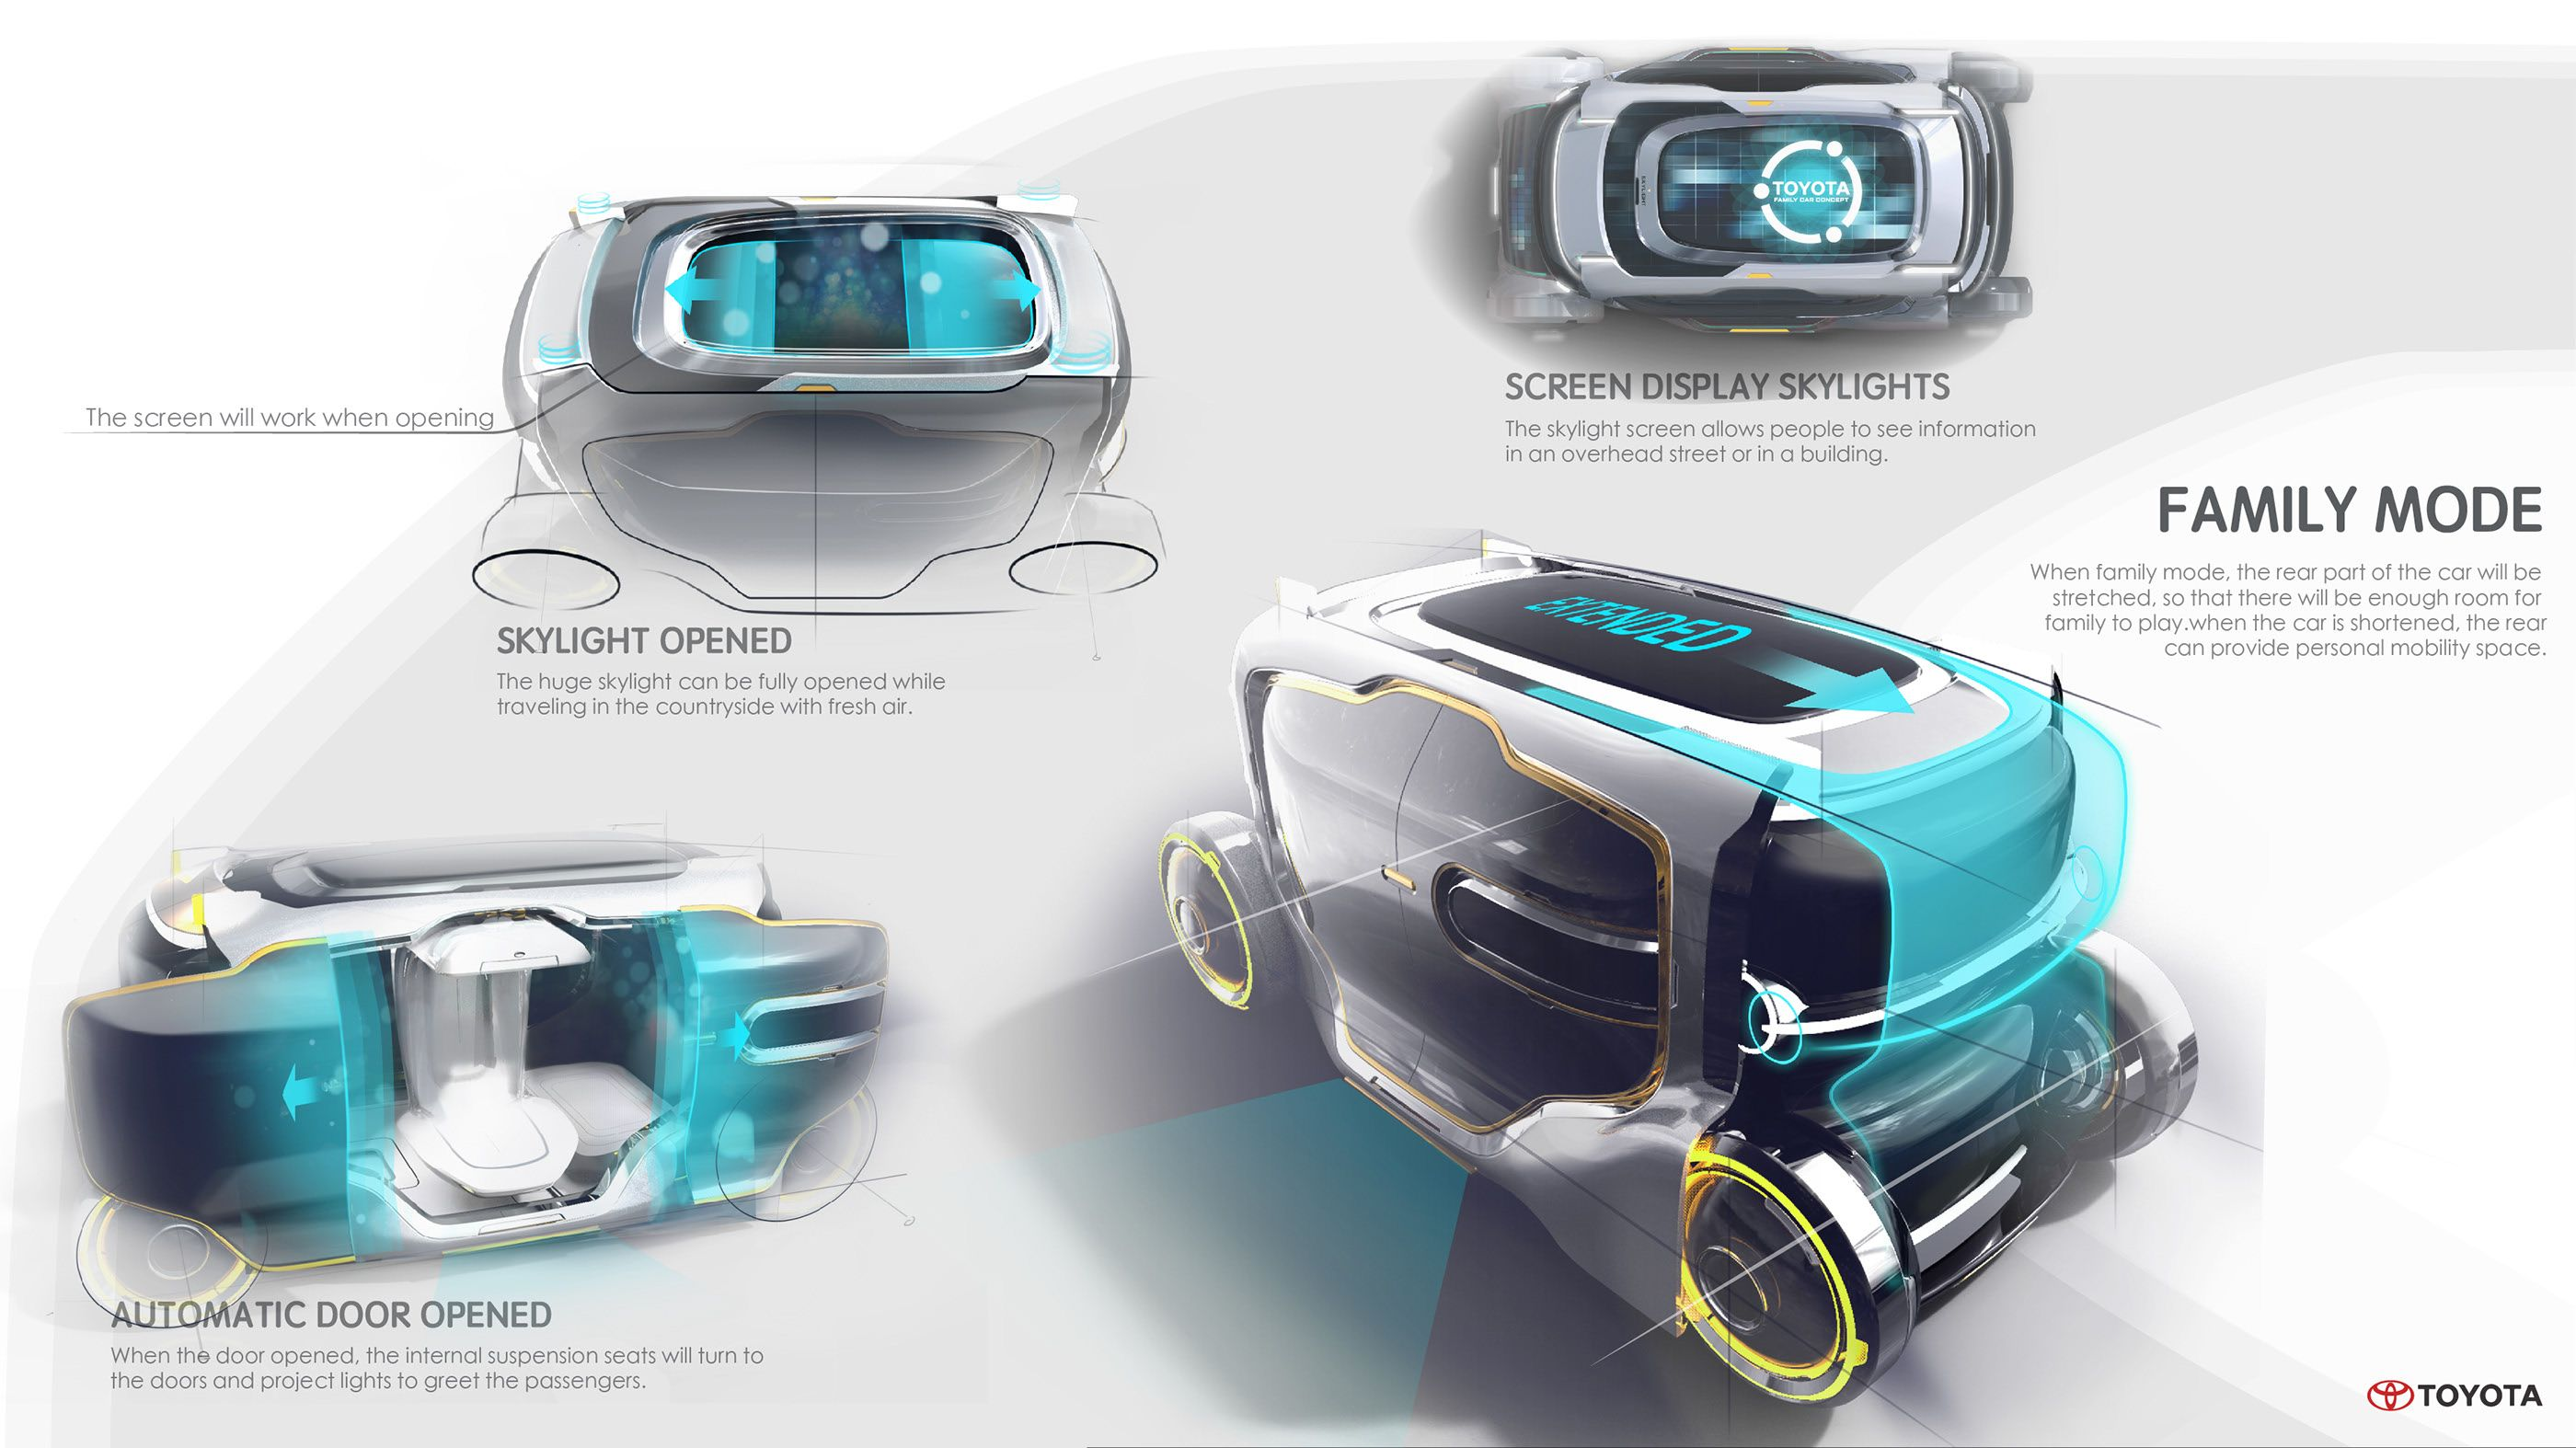 TOYOTA Family Concept 2030 on Behance